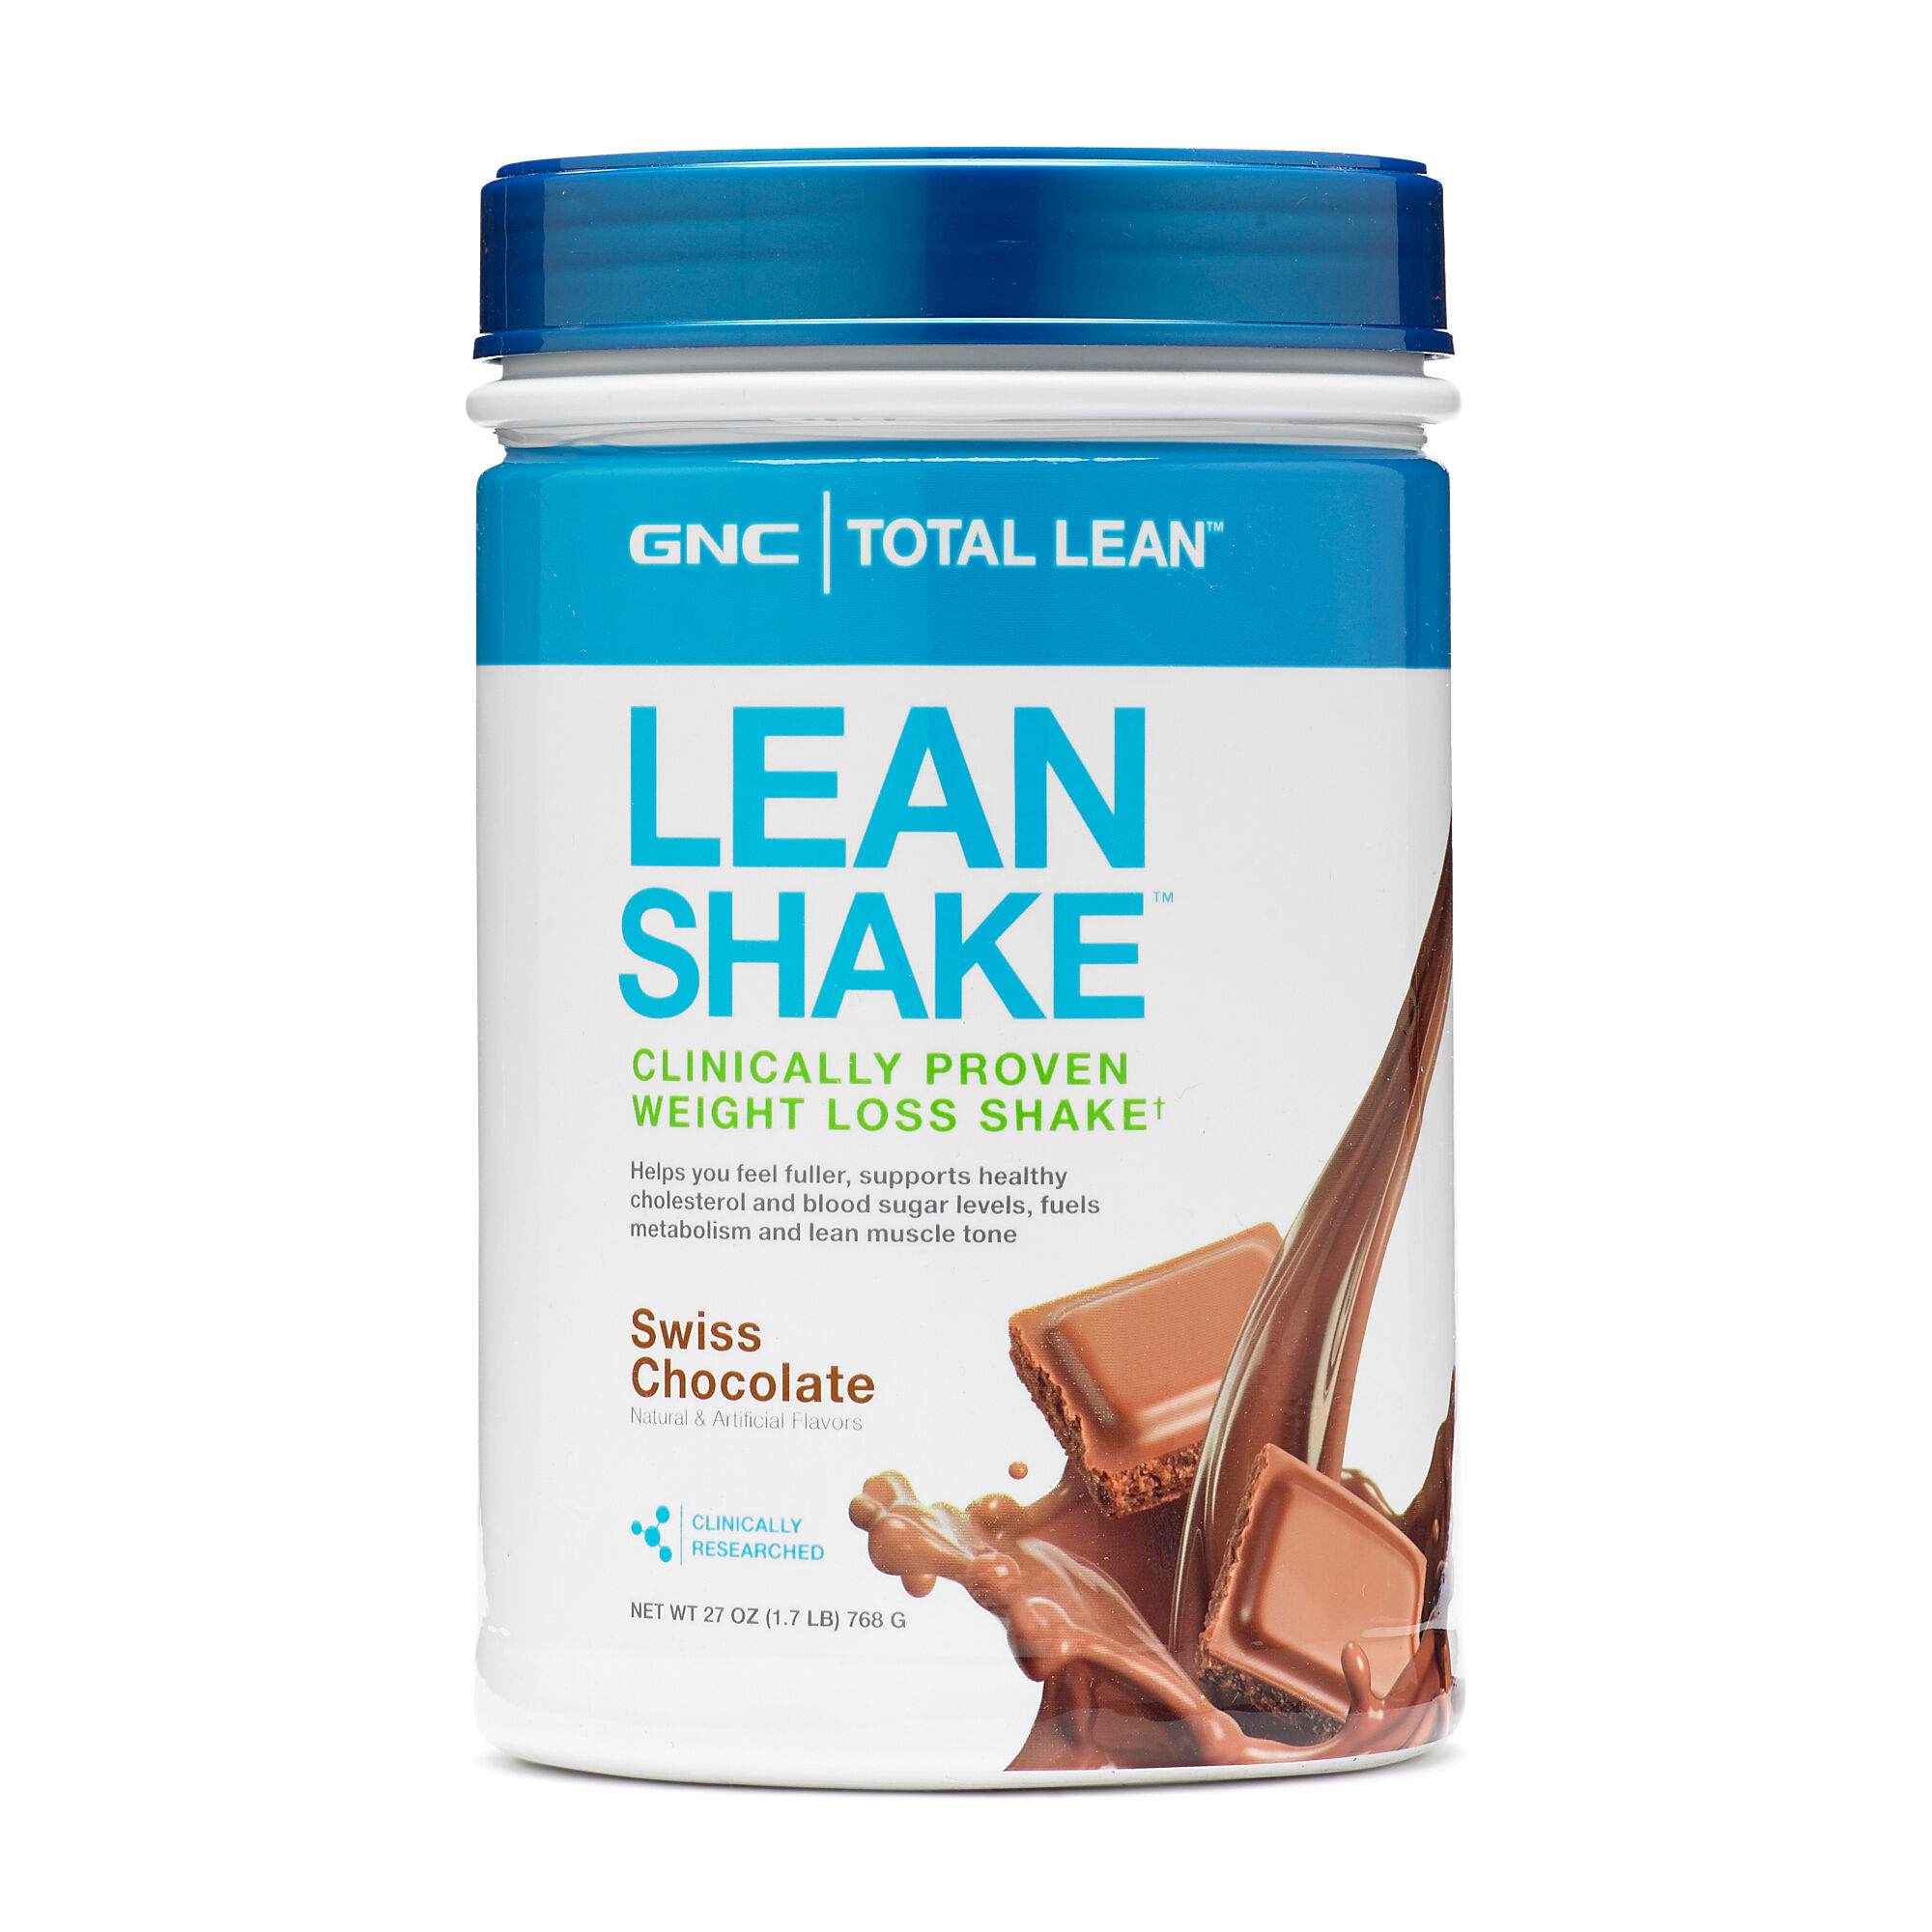 Lean Shake™ - Swiss Chocolate